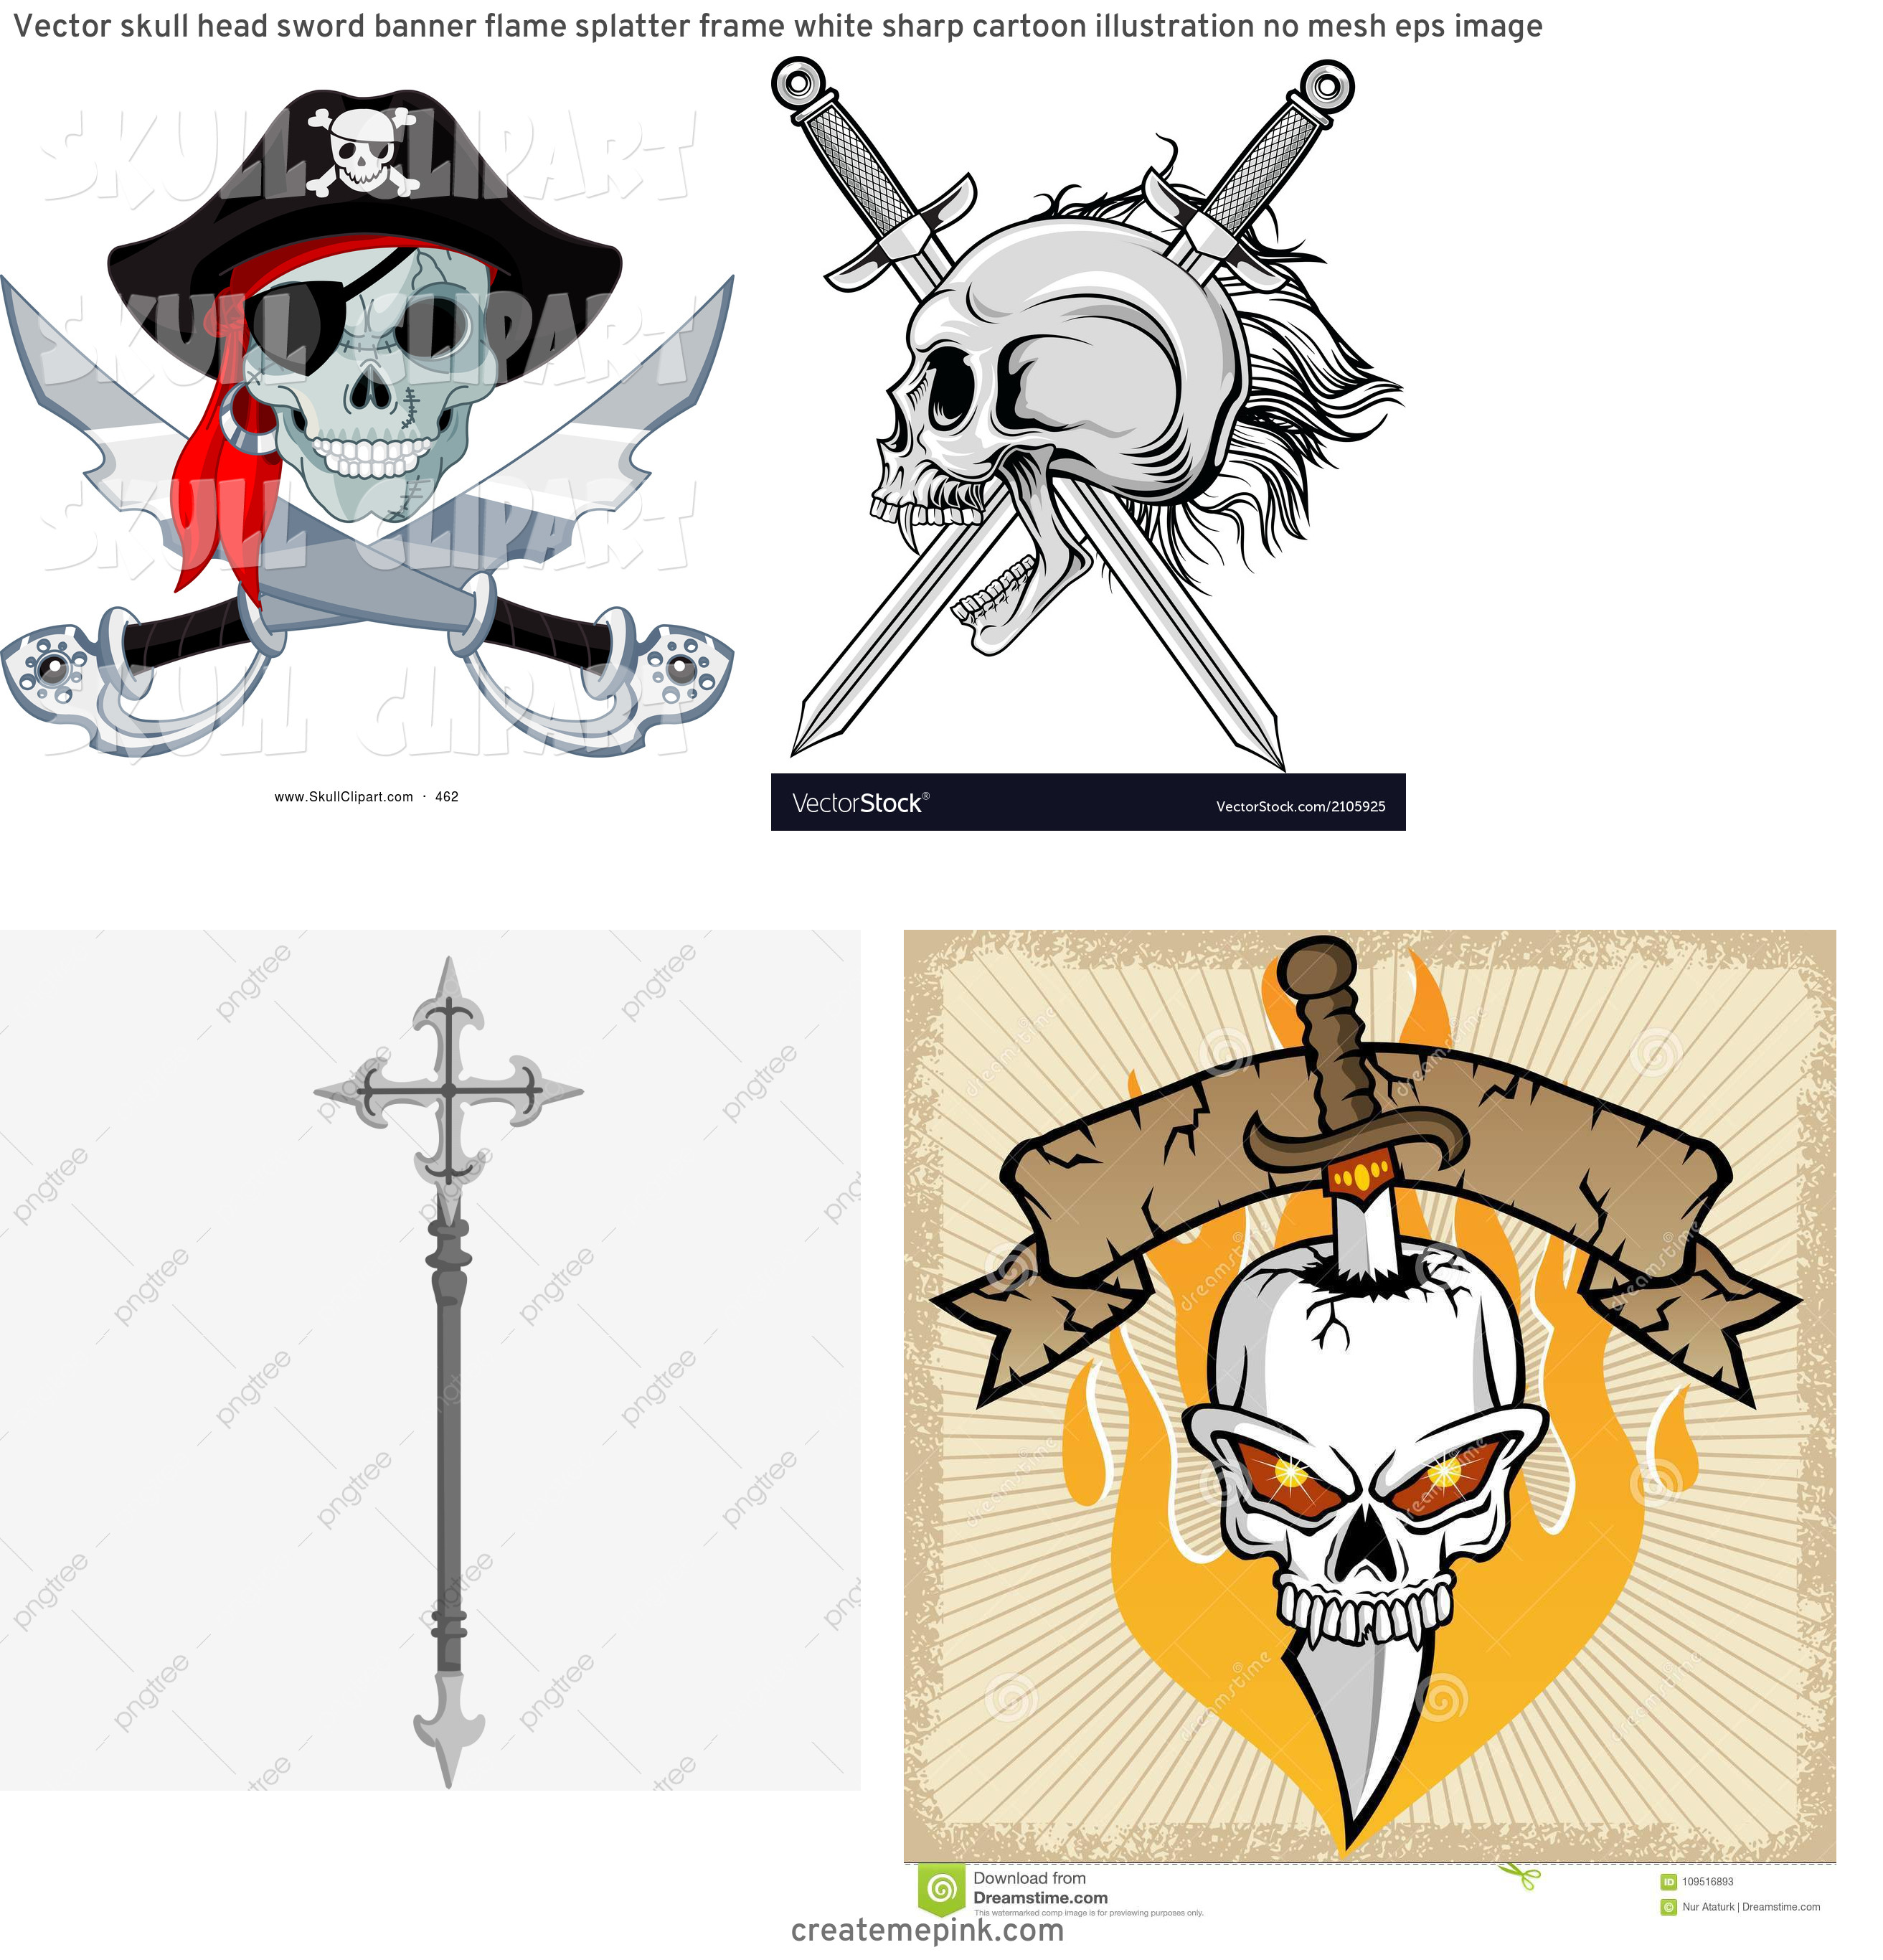 Skull Sword Vector: Vector Skull Head Sword Banner Flame Splatter Frame White Sharp Cartoon Illustration No Mesh Eps Image